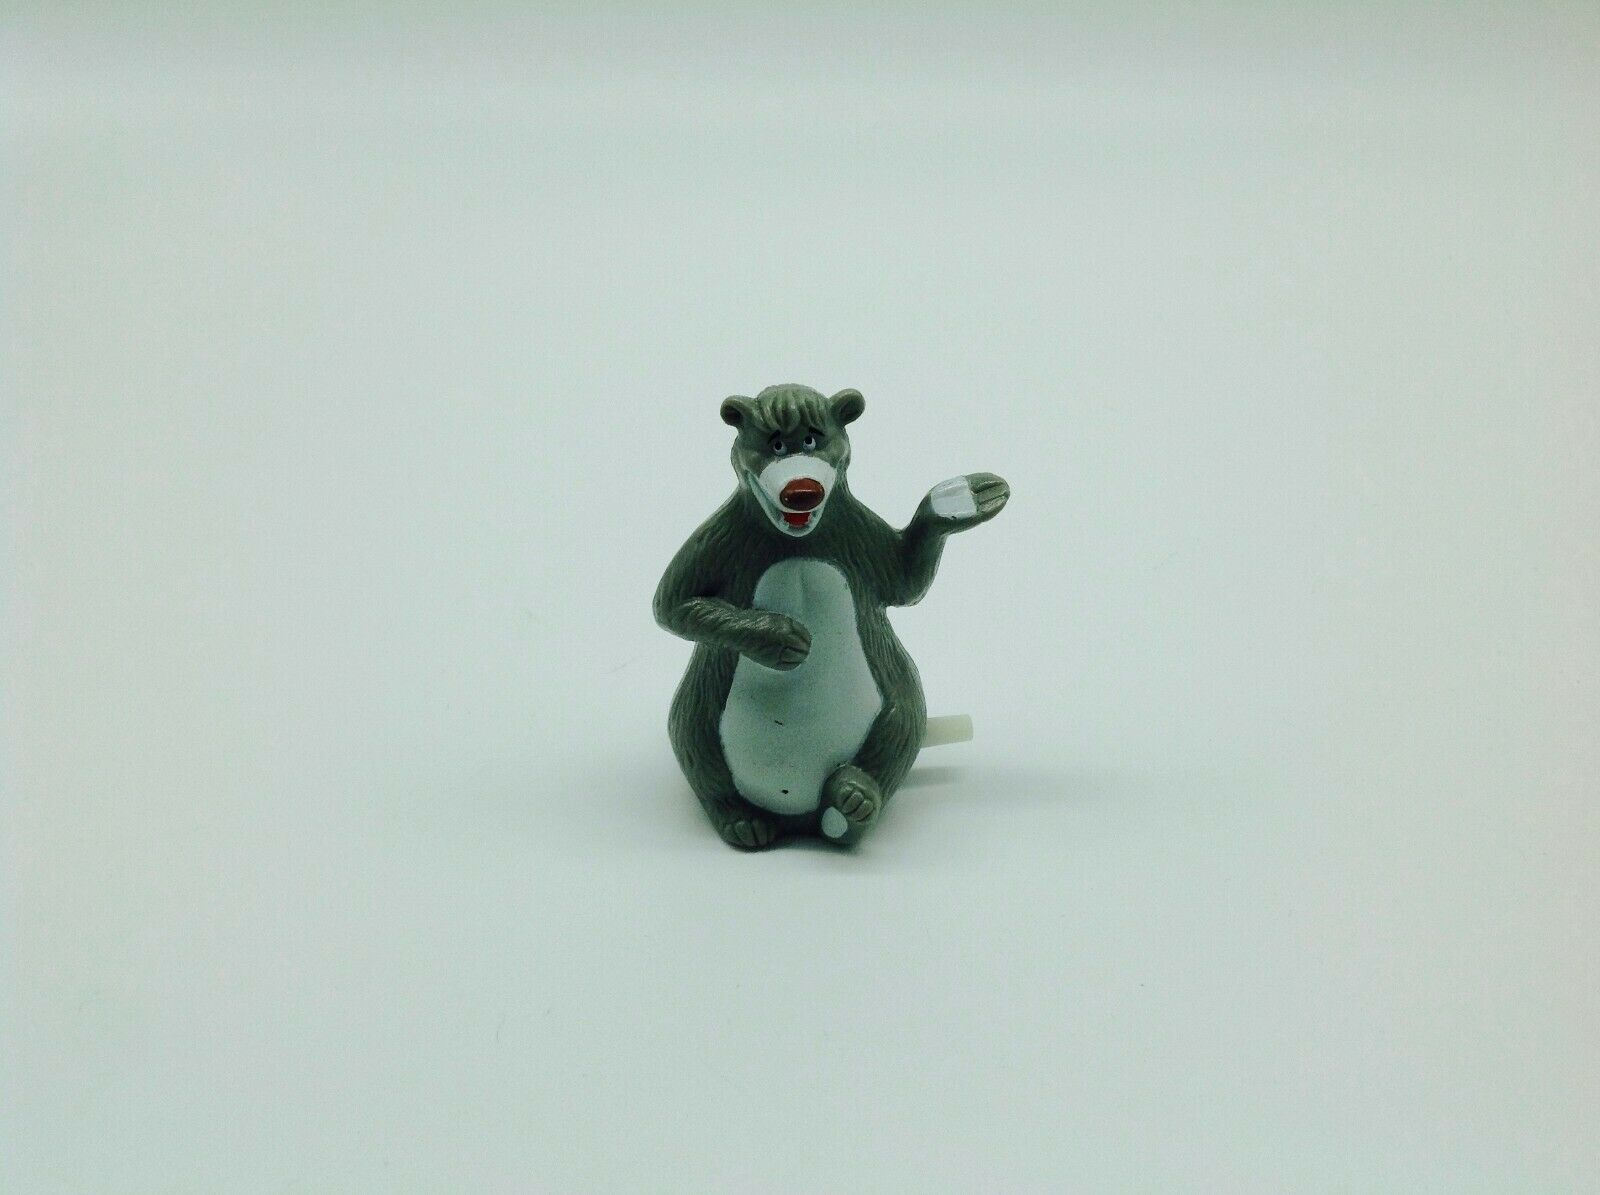 The Jungle Book BALOO Wind-up Toy - 1990 McDonald's Happy Meal Toy - $6.89